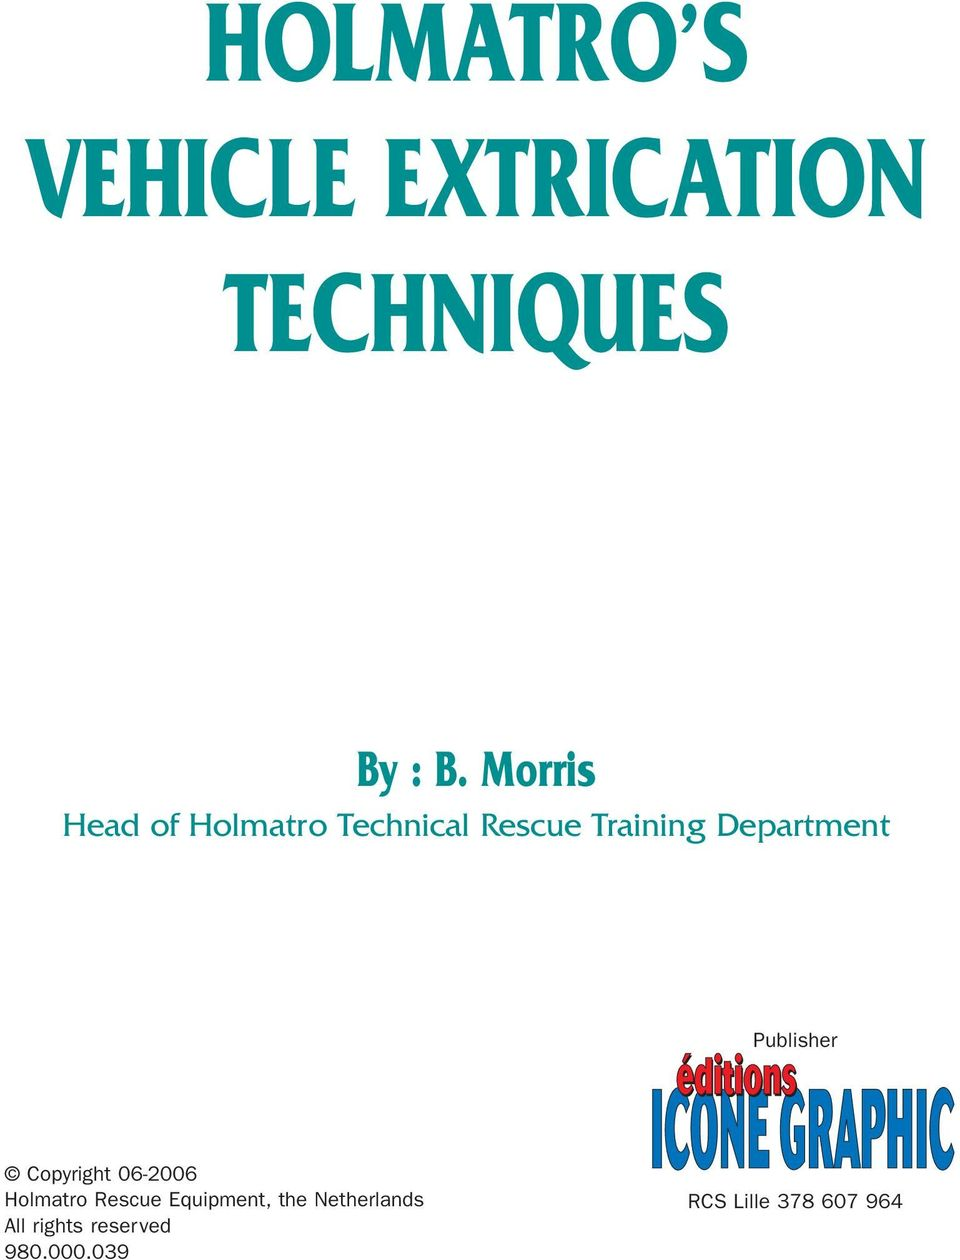 VEHICLE EXTRICATION TECHNIQUES - PDF